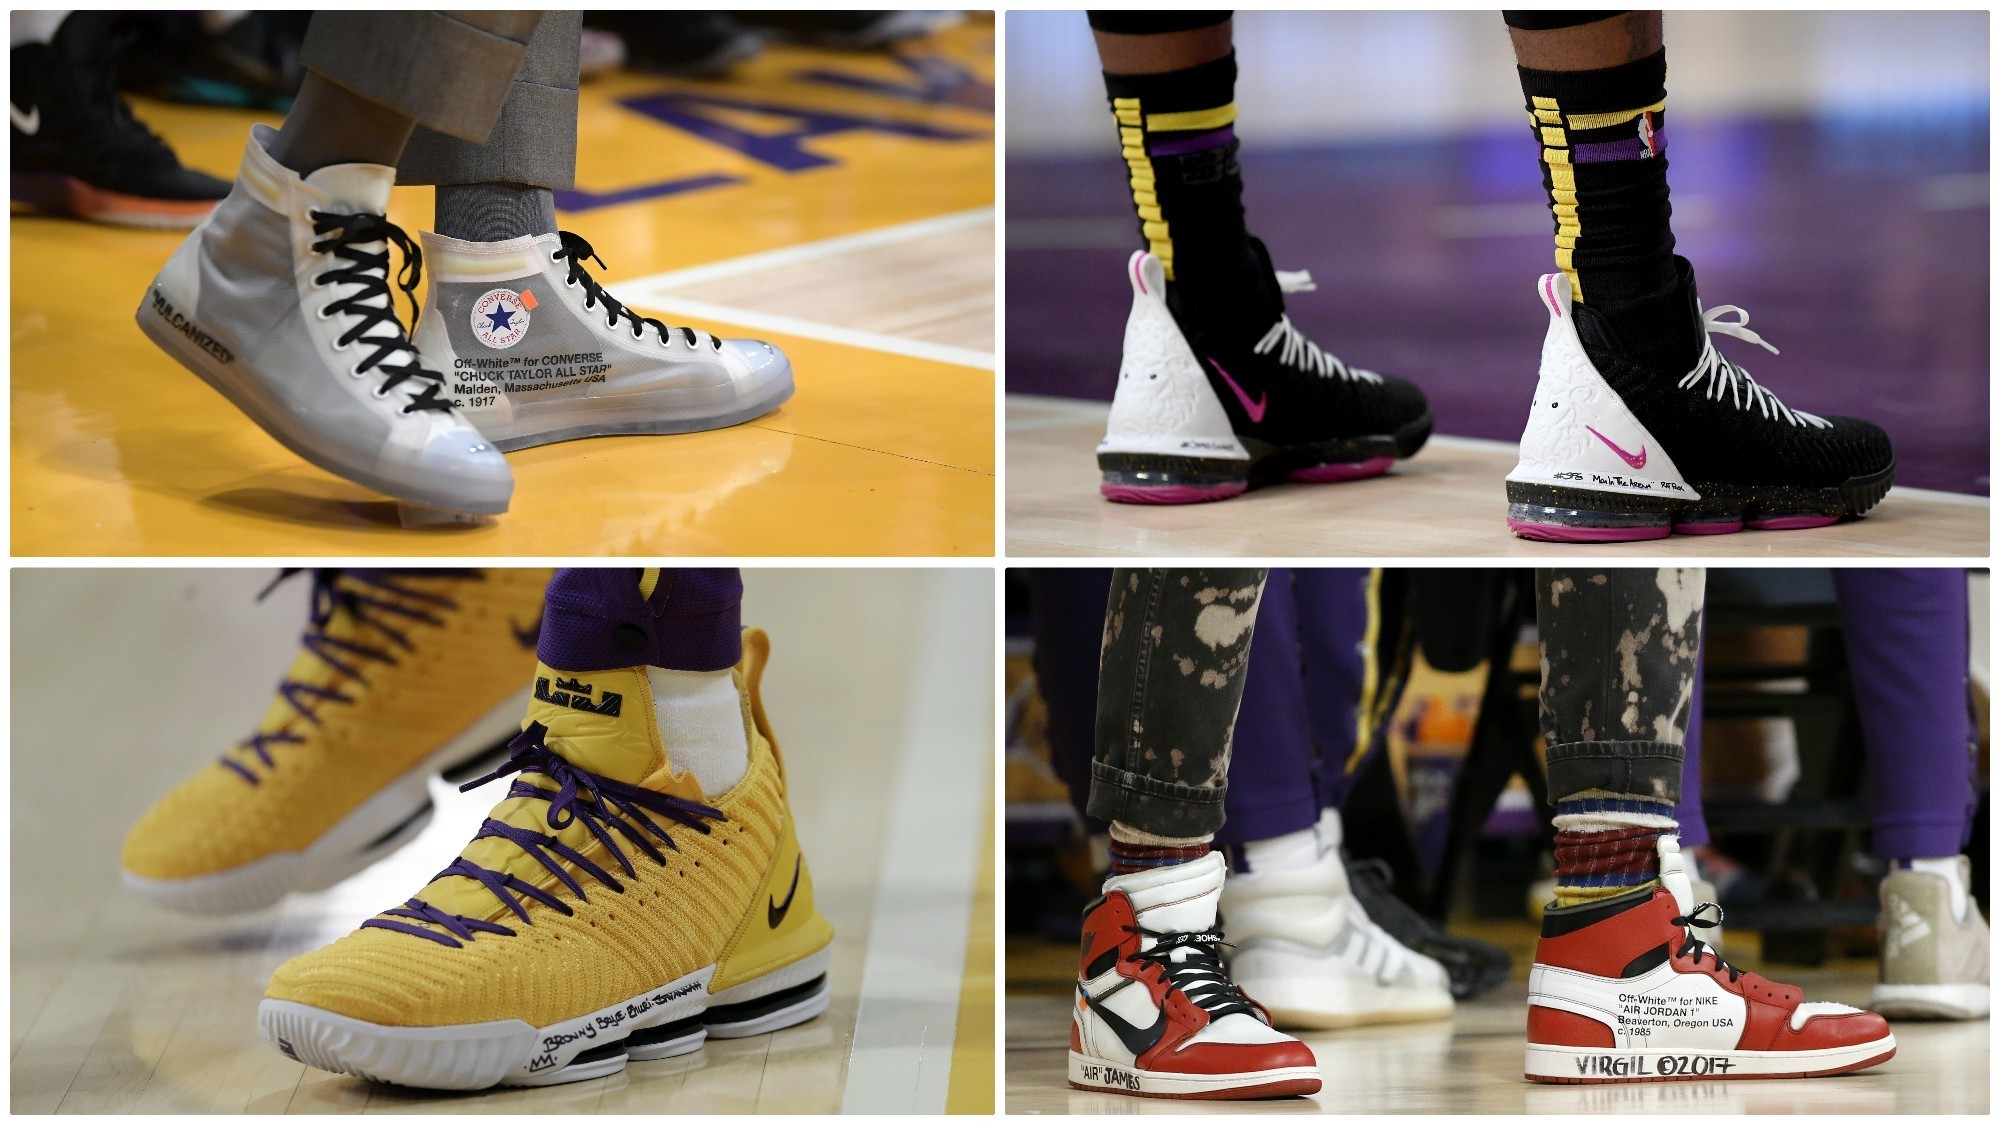 The shoes of Los Angeles Lakers forward LeBron James.